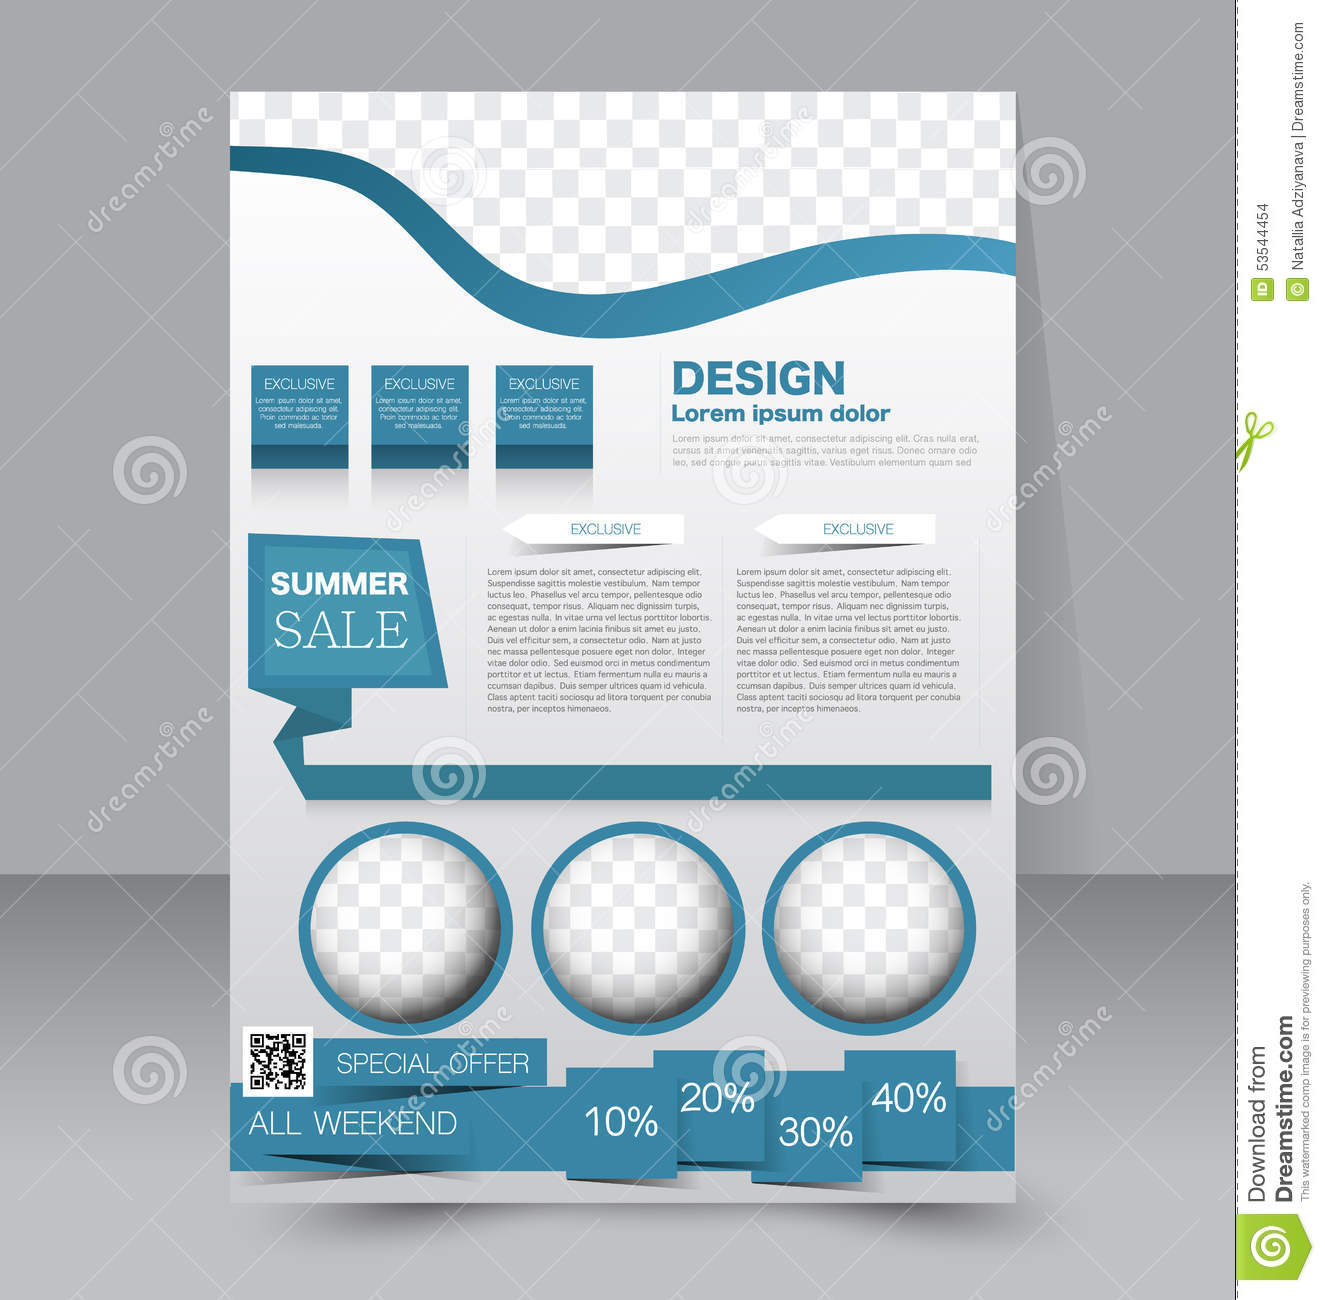 Poster design website - Flyer Template Business Brochure Editable A4 Poster Stock Vector